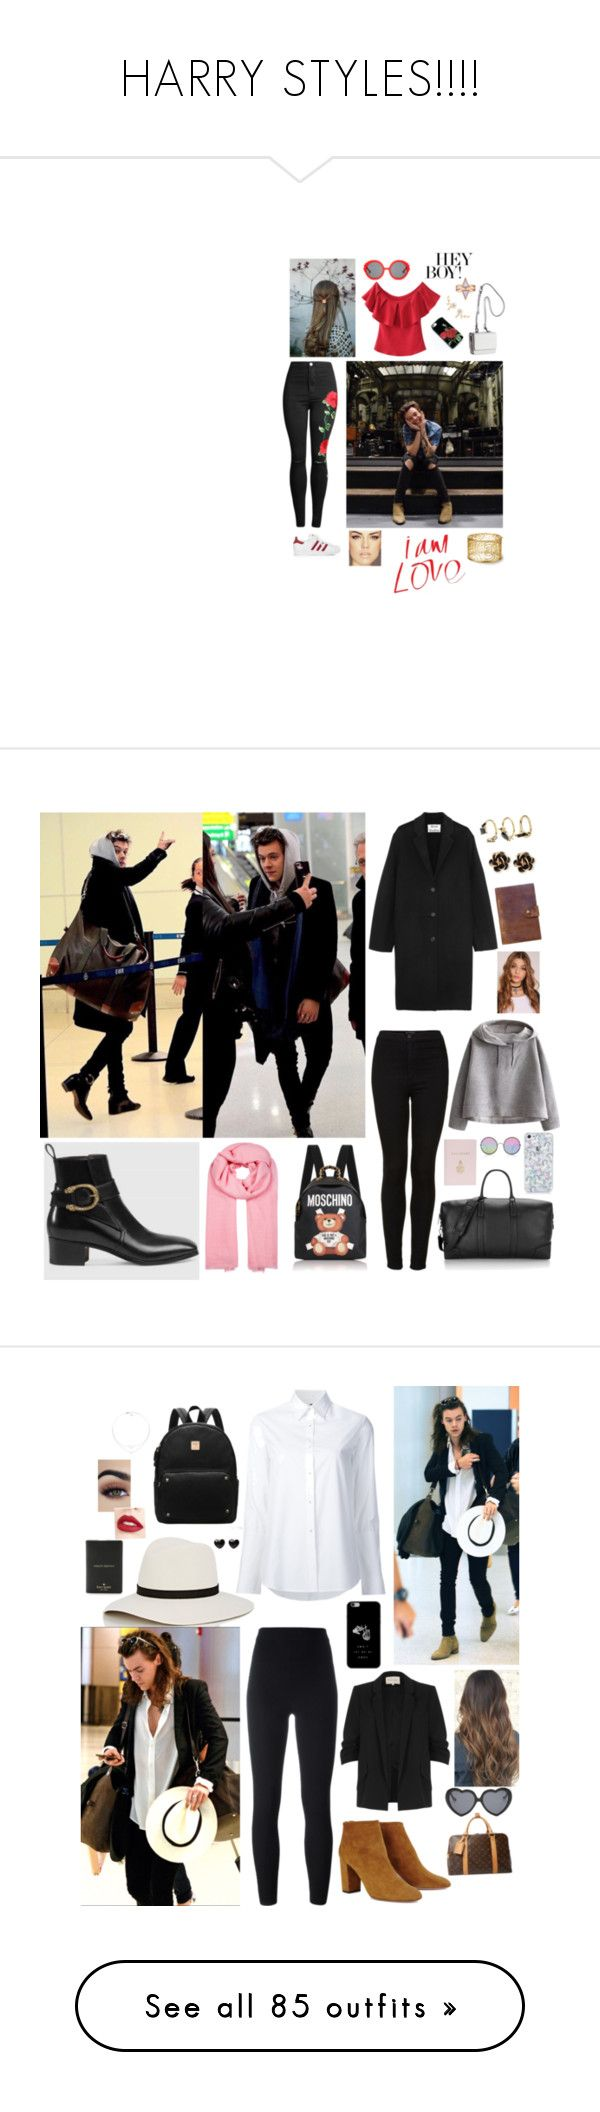 """""""HARRY STYLES!!!!"""" by mary-5so1ds ❤ liked on Polyvore featuring adidas, Kendall + Kylie, Preen, Denis Colomb, Acne Studios, Topshop, WithChic, Moschino, Rebecca Minkoff and Mark Cross"""